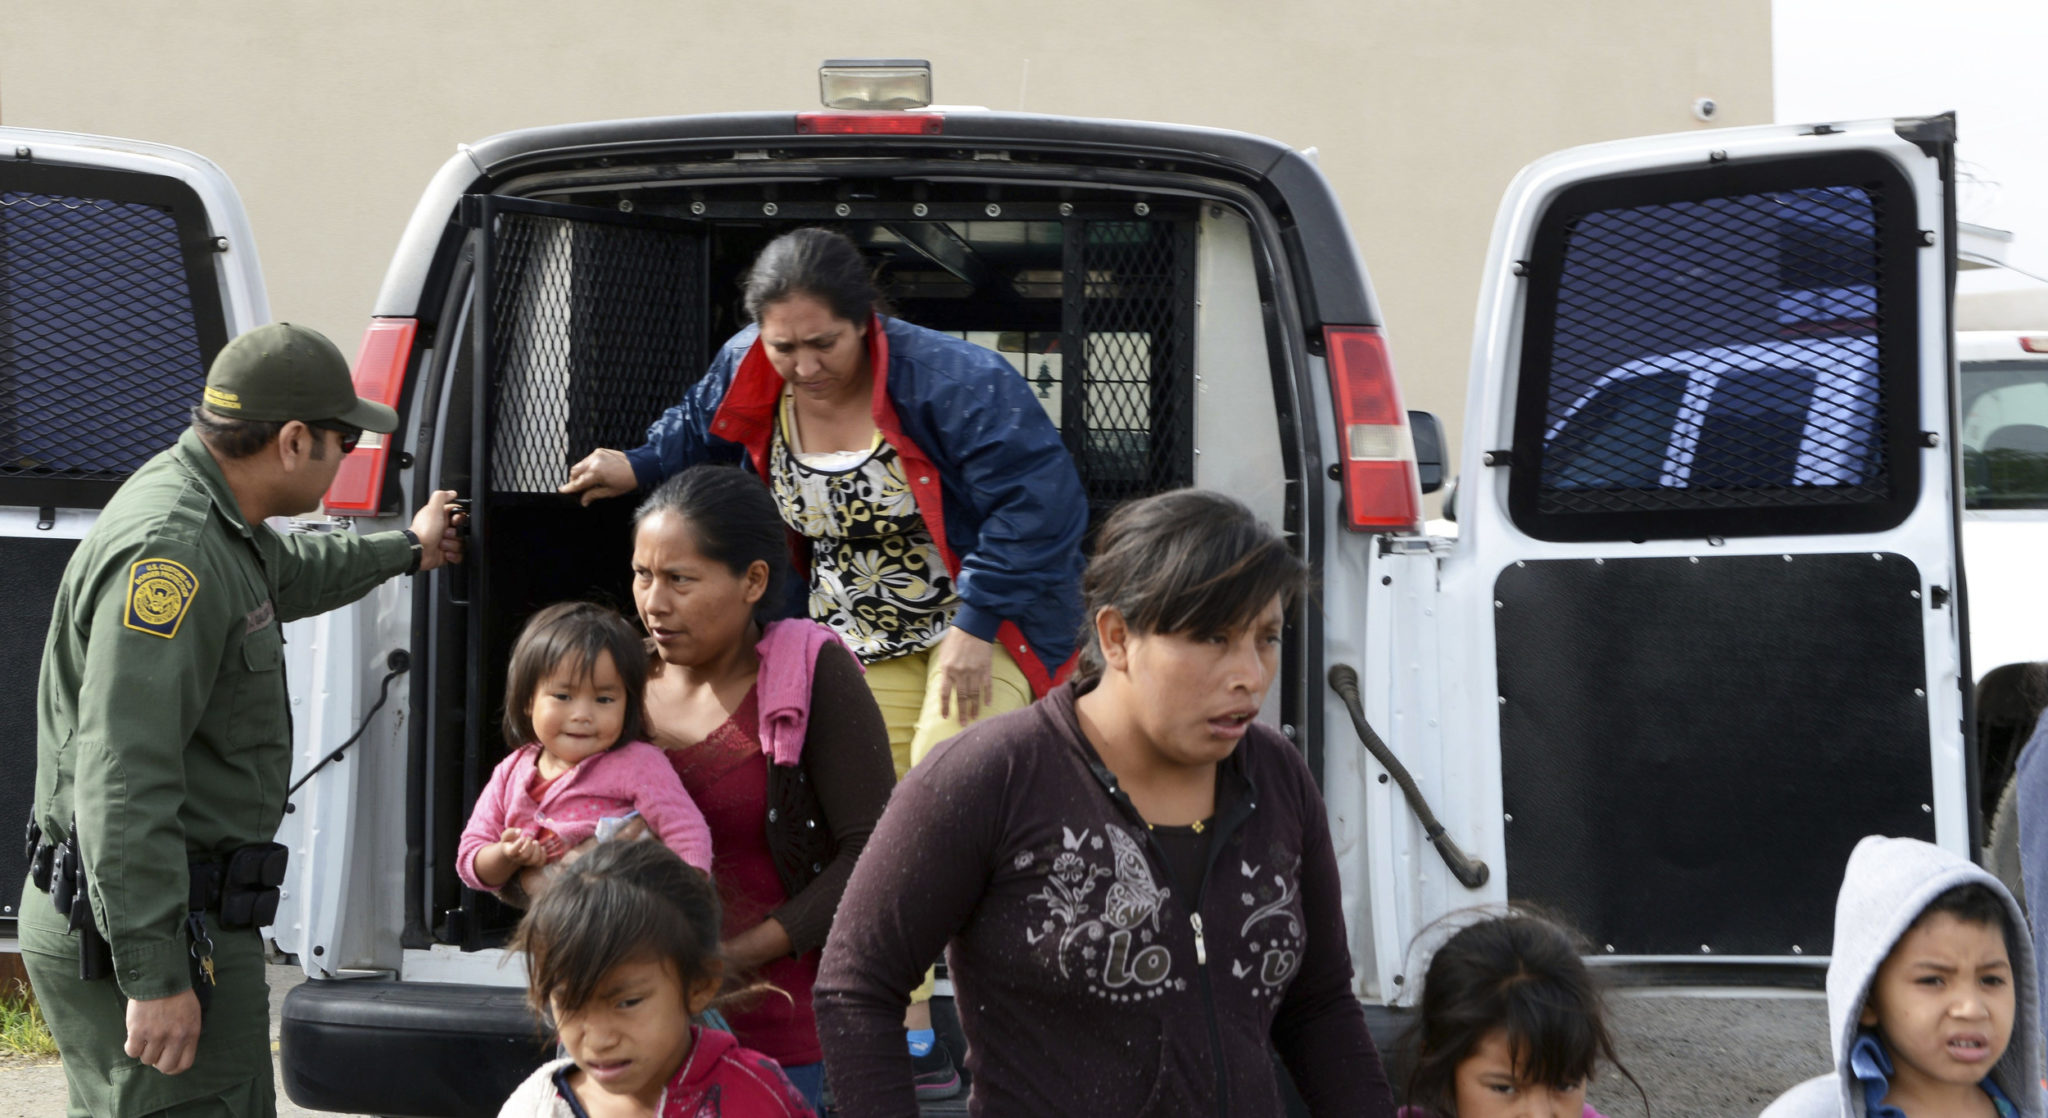 Migrants Dropped Off in New Mexico; City Asks for Donations